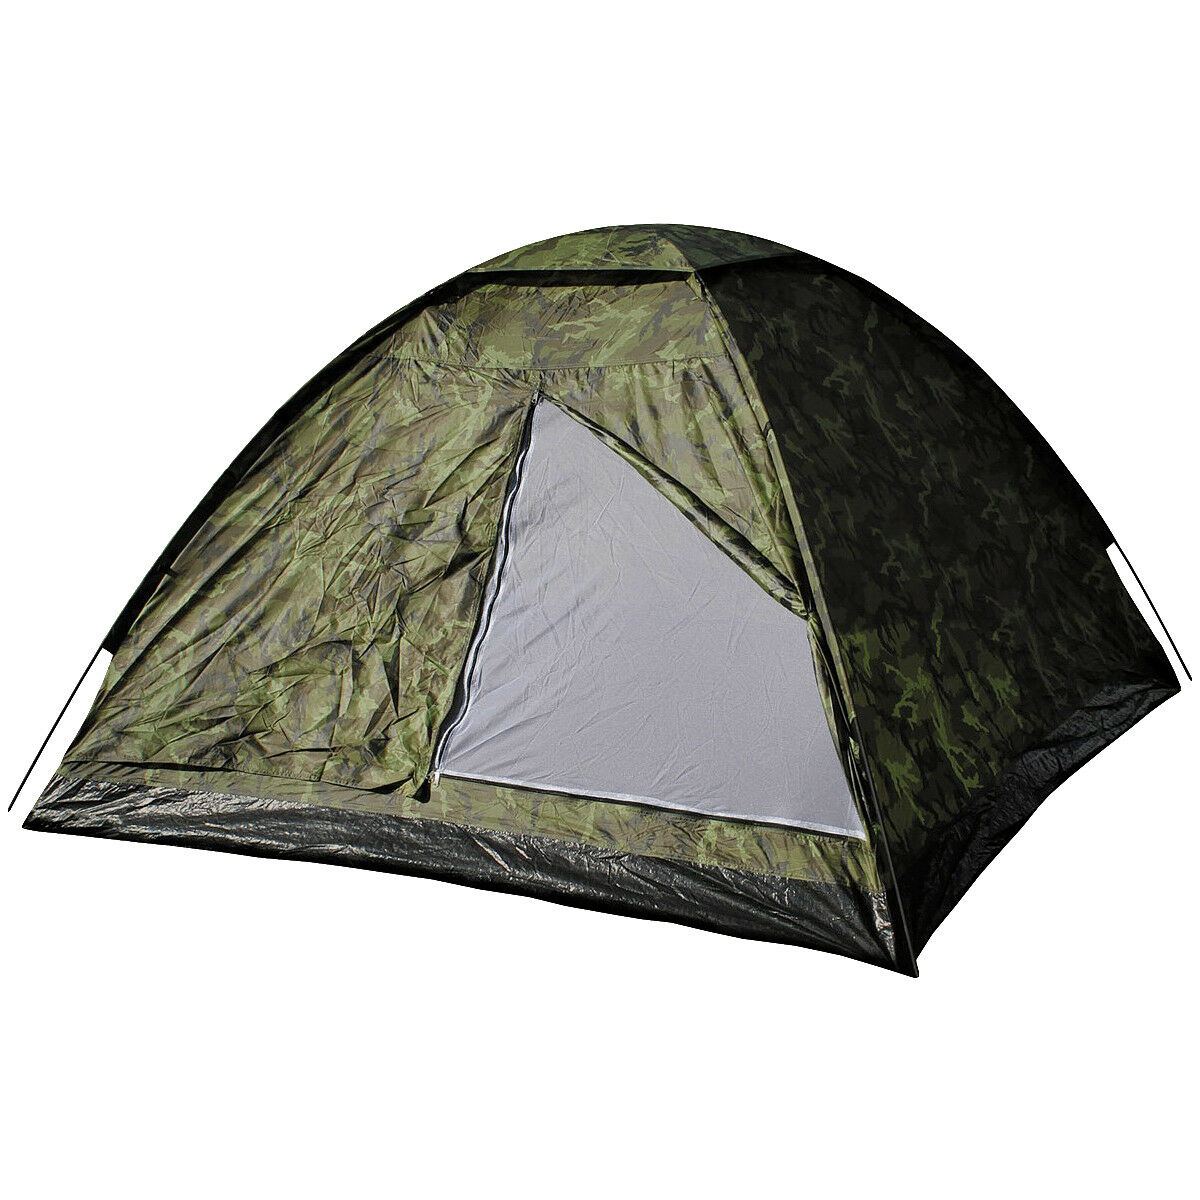 MFH Large 3 Person Monodom Tent Holiday Wandering Combat Czech Woodland Camo